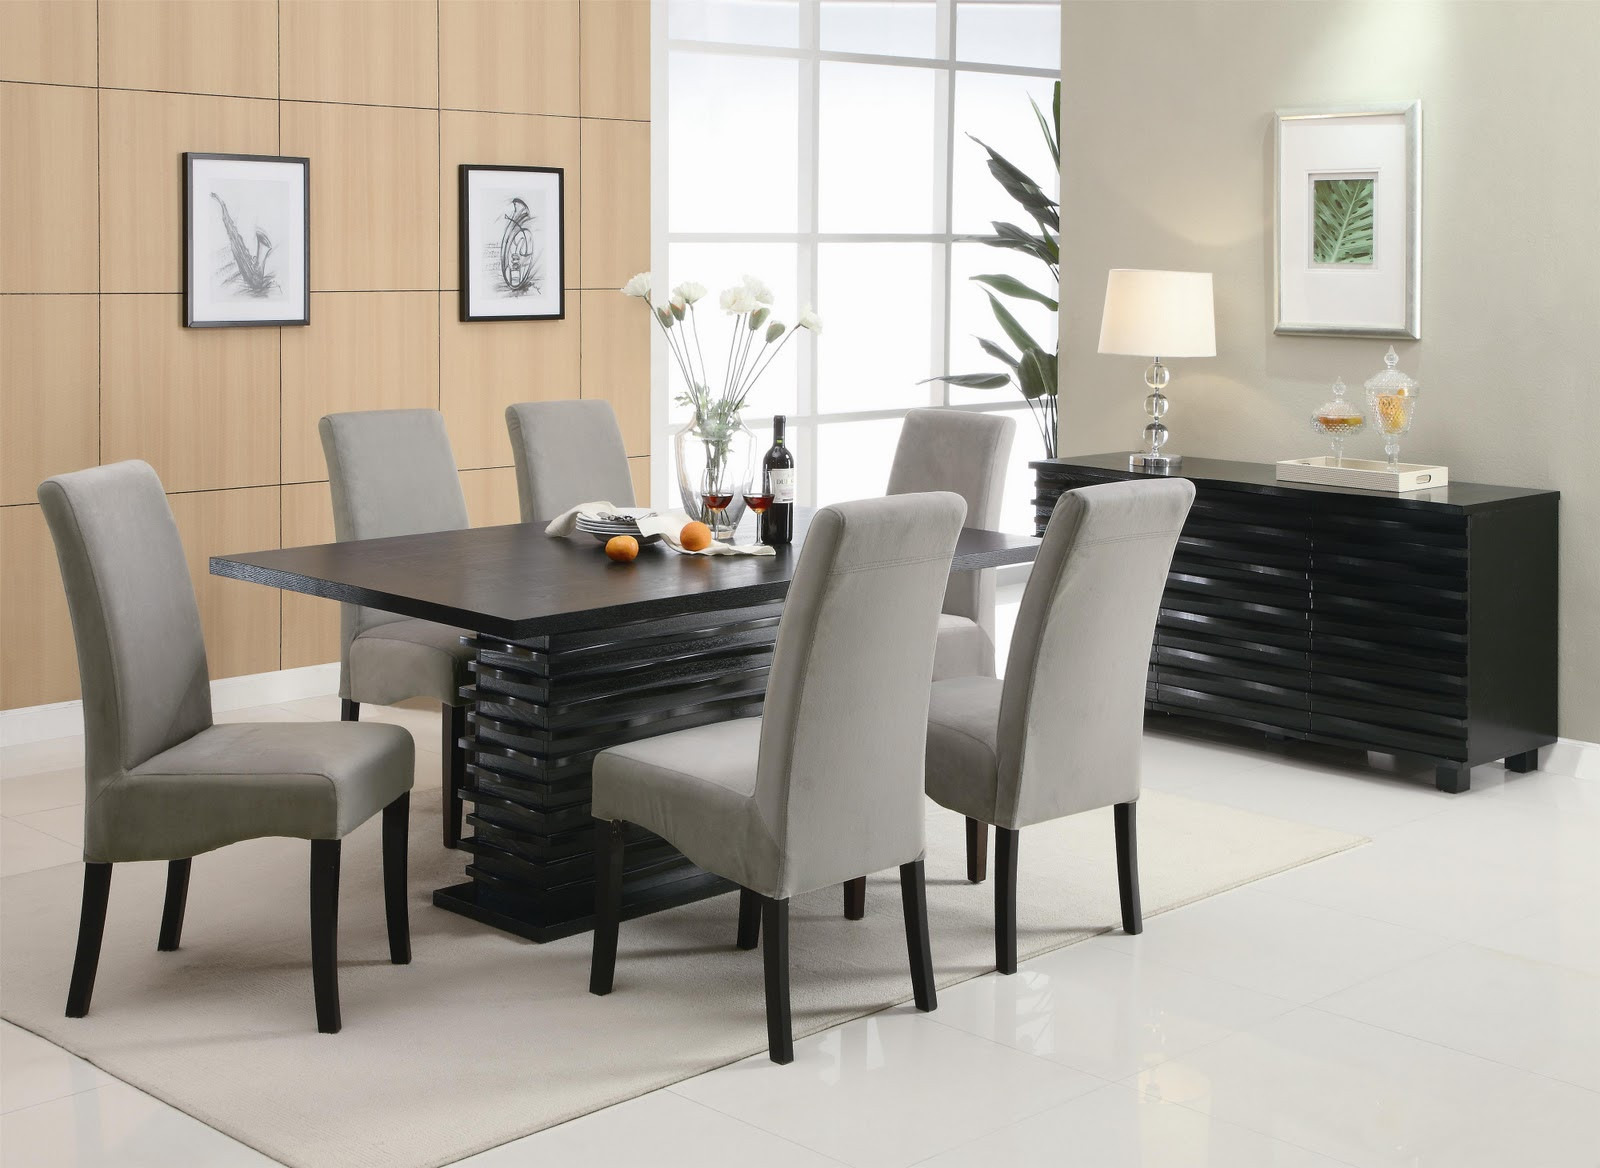 Best ideas about Dining Room Furniture . Save or Pin Dining Room Now.